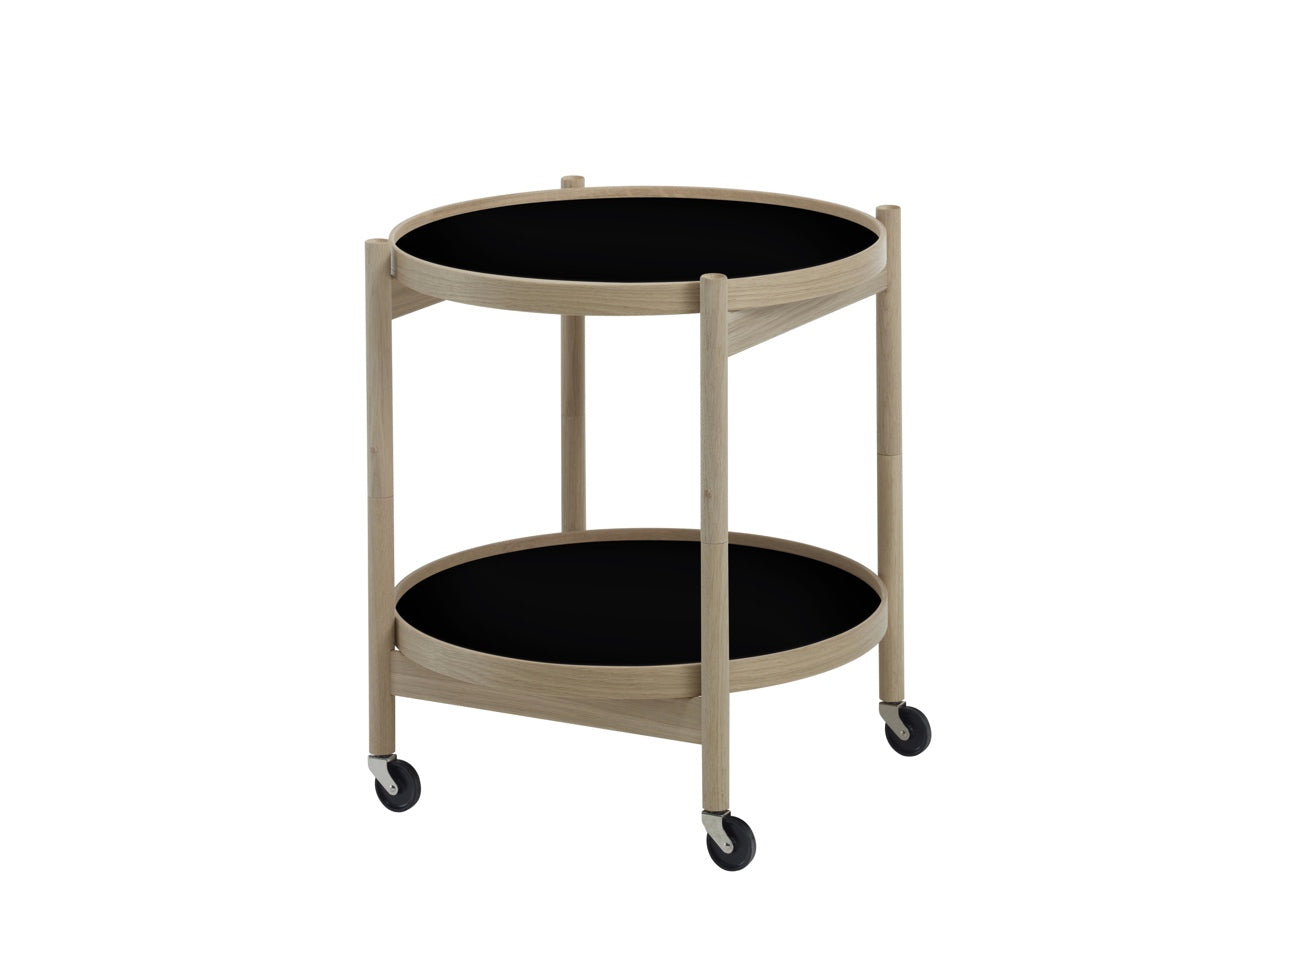 Subscription_OMNI_Brdr._Krüger_Small_Tray_Table_Black_classic_wheels_conference_office_wooden_frame_furniture_functional